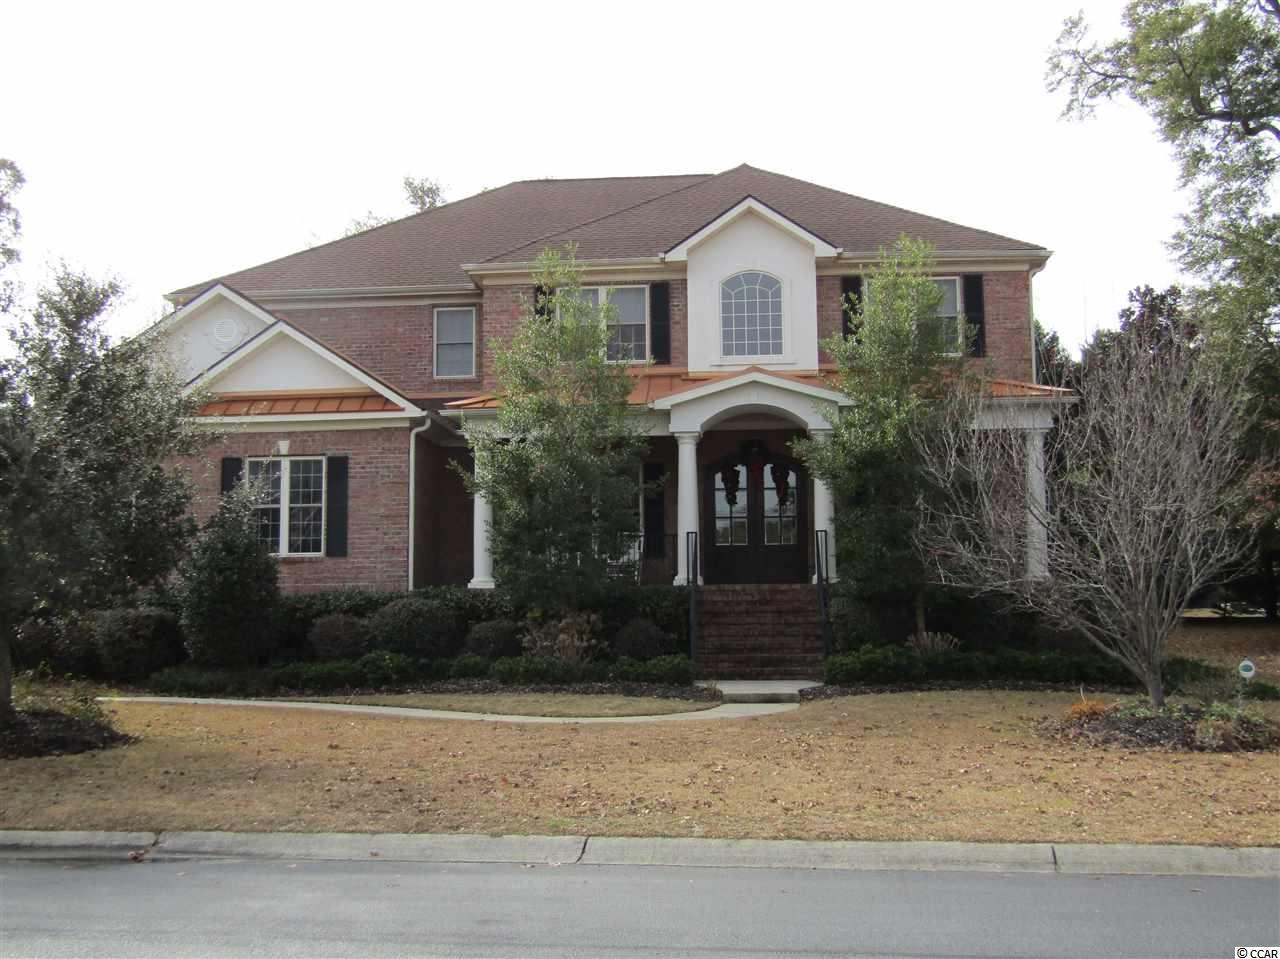 PRICE REDUCTION!!!  MOTIVATED SELLER!!!  TN Mortgage Co. offering closing credit if used.  Be prepared to say WOW when you walk into this stunning, all brick custom home in the prestigious Big Landing Plantation!  With five bedrooms, 3 full bathrooms and 2 half bathrooms and an open floor plan, this home has room to roam.  The home boasts a two story foyer and kitchen area, high quality flooring including bright, shiny hard wood, ceramic tile, custom cabinetry, crown molding throughout and many surprising architectural features like arched doorways and beveled wall corners.  As you enter the home you will see the elegant formal dining room and large office… from there you will be drawn to the spectacular gourmet kitchen with it's warm and inviting colors, stainless appliances (including two wall ovens), gas stove, granite counter tops, wraparound bar, an island with a sink and also an attached dining area with a built in desk.  Just a few steps from the kitchen is the family room featuring a fireplace and custom built in book cases.  The over sized master suite is exquisite with its tray ceiling, expansive walk-in closet and amazing master bath that features a huge garden tub, stand-alone shower and double vanities.  On the second level you will find the lofted game room which includes a spectacular Old English pub style bar area.  A draw for nights of entertaining friends and family or just kicking back and watching the big game!  The second floor also has four bedrooms and two full bathrooms.  Other home features include ceiling fans throughout, an integrated sound system, a screened porch that leads to the fenced back yard and a huge two car garage with plenty of room for storage, beach items and even a work area. Pictures do not convey how absolutely beautiful this home is!   Big Landing Plantation is a double gated waterway community that's conveniently located between the amazing beaches in Sunset Beach, NC and North Myrtle Beach, SC.  The community has many delightful amenities including a community pool with covered seating, boat dock and pier access on the Intracoastal Waterway with a picnic area.